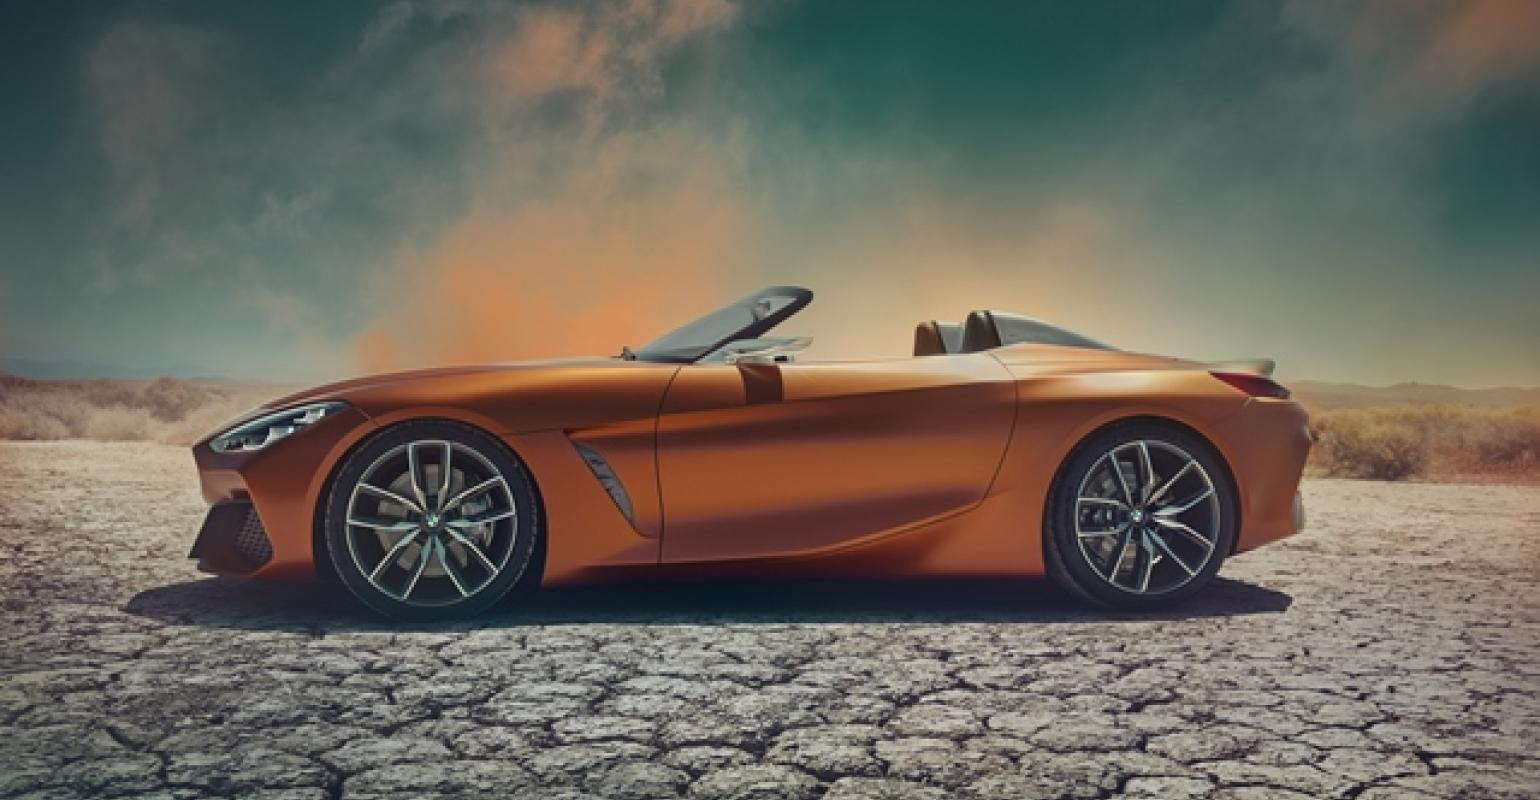 Bmw Unveils Concept Z4 Roadster At Pebble Beach